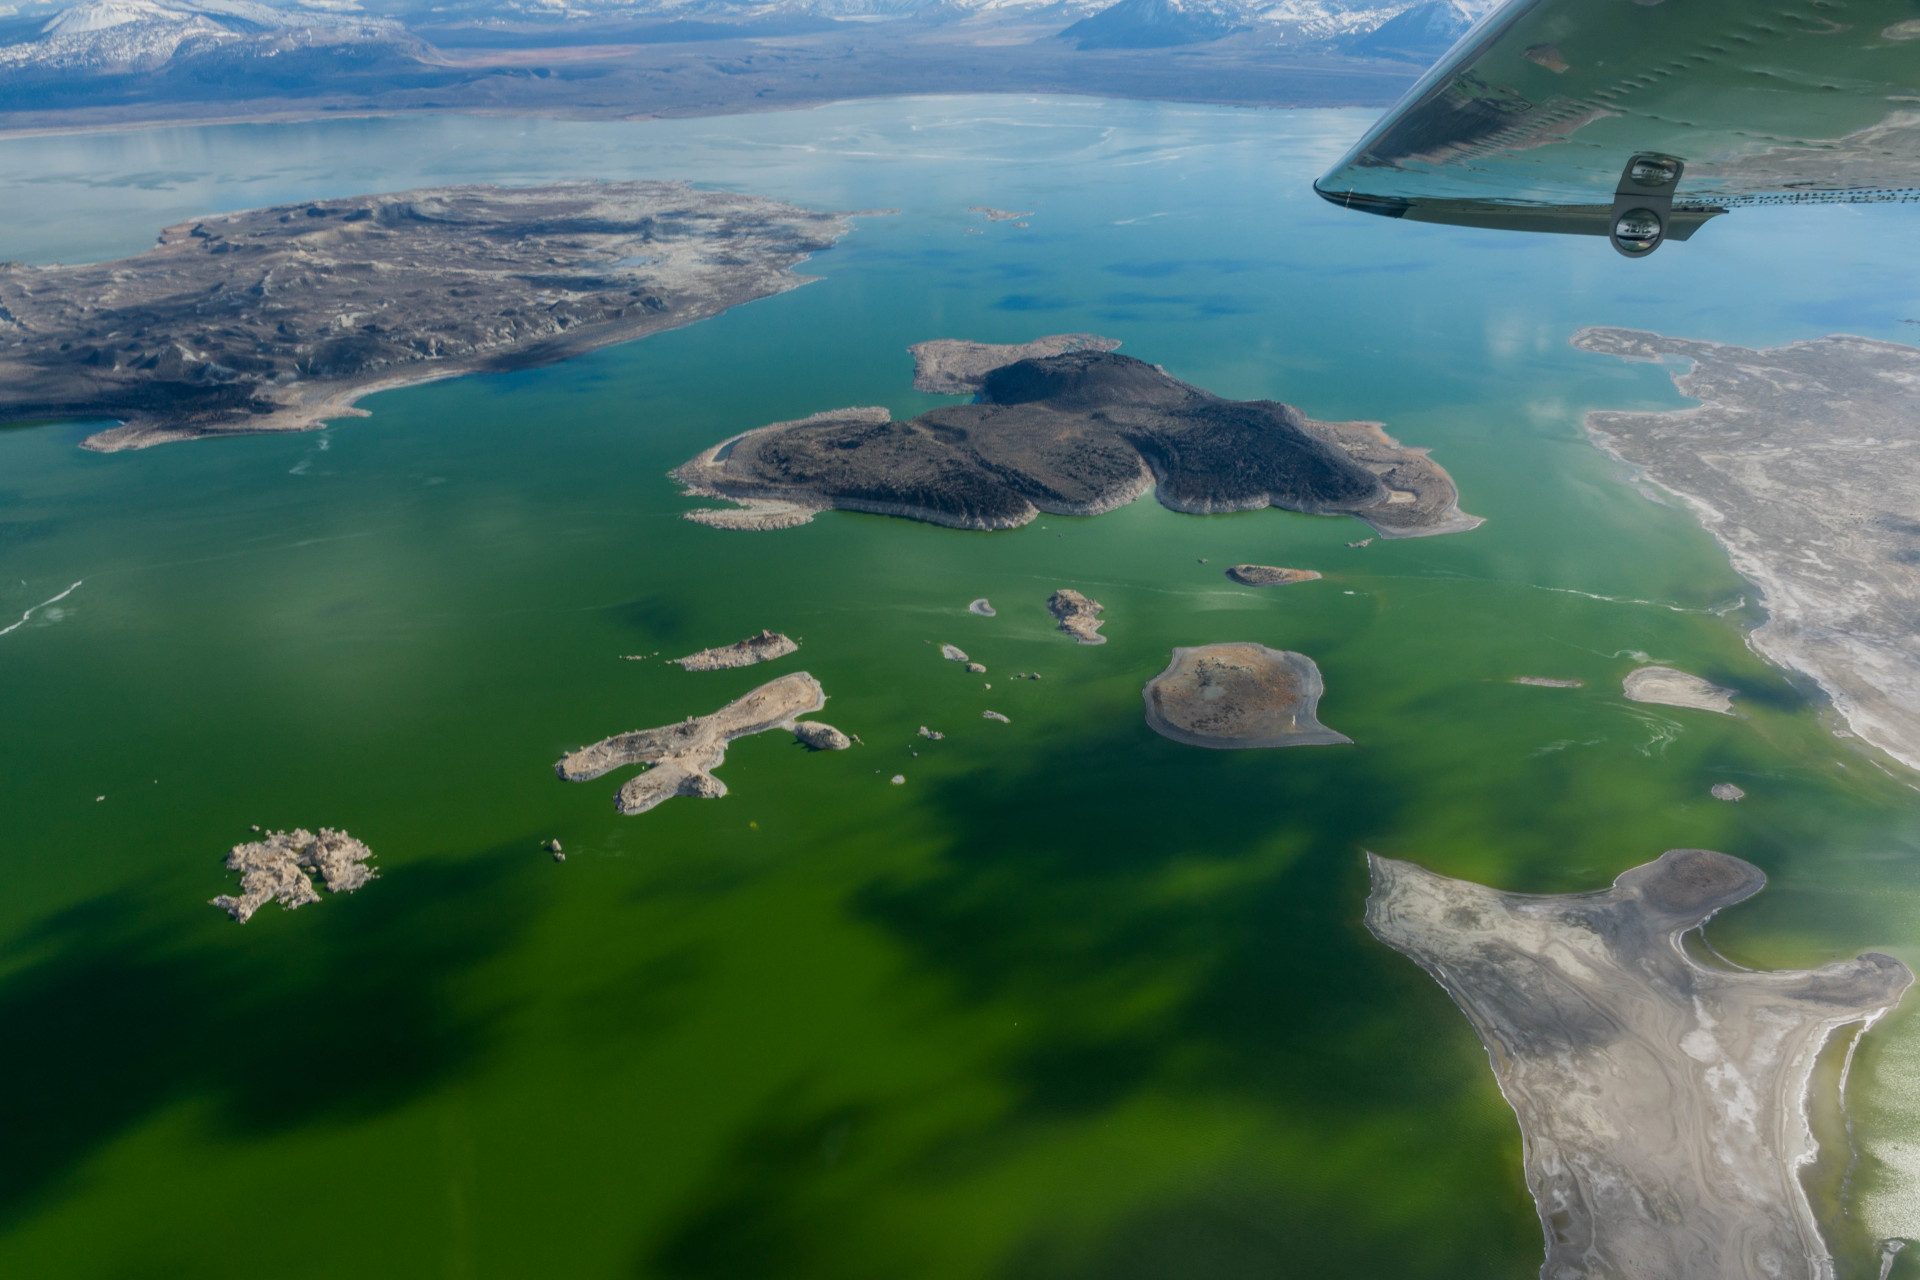 Persistent and Continuing Air Quality Violations at Mono Lake Due to Dewatering | GBUAPCD